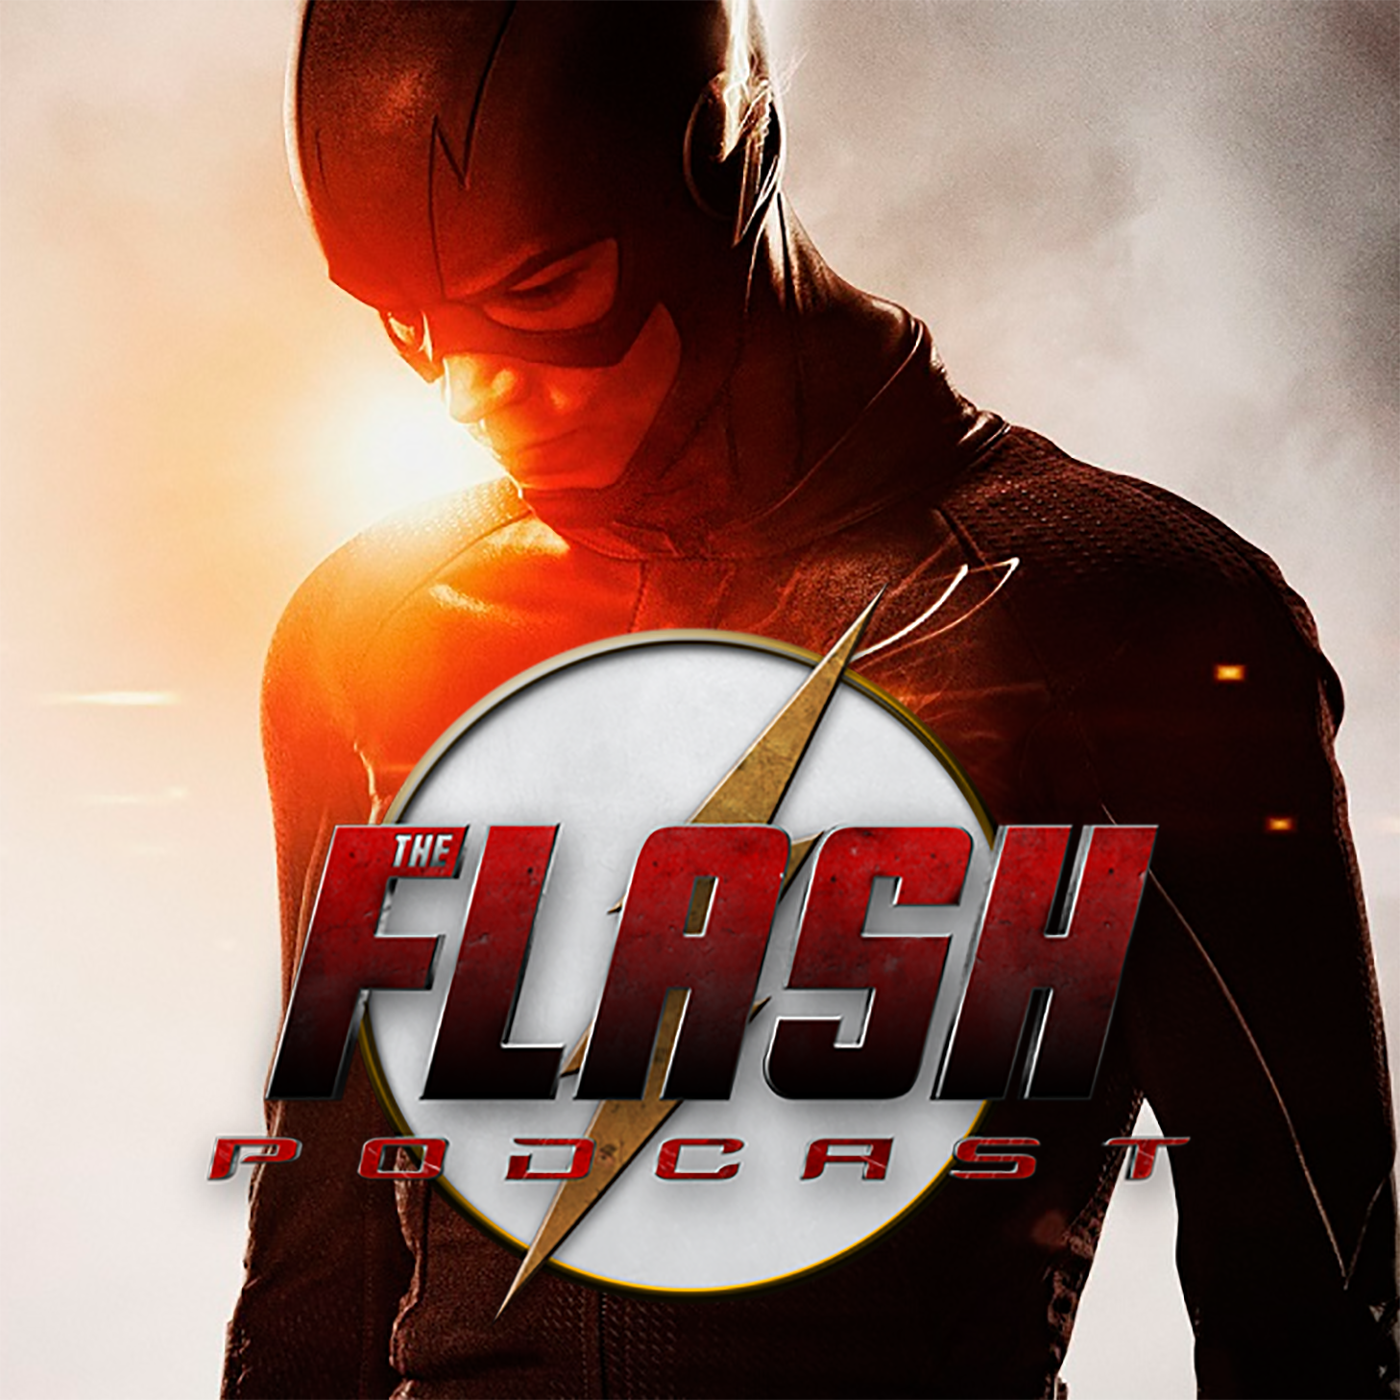 The Flash Podcast Season 1.5 – The Multiverse and Earth 2